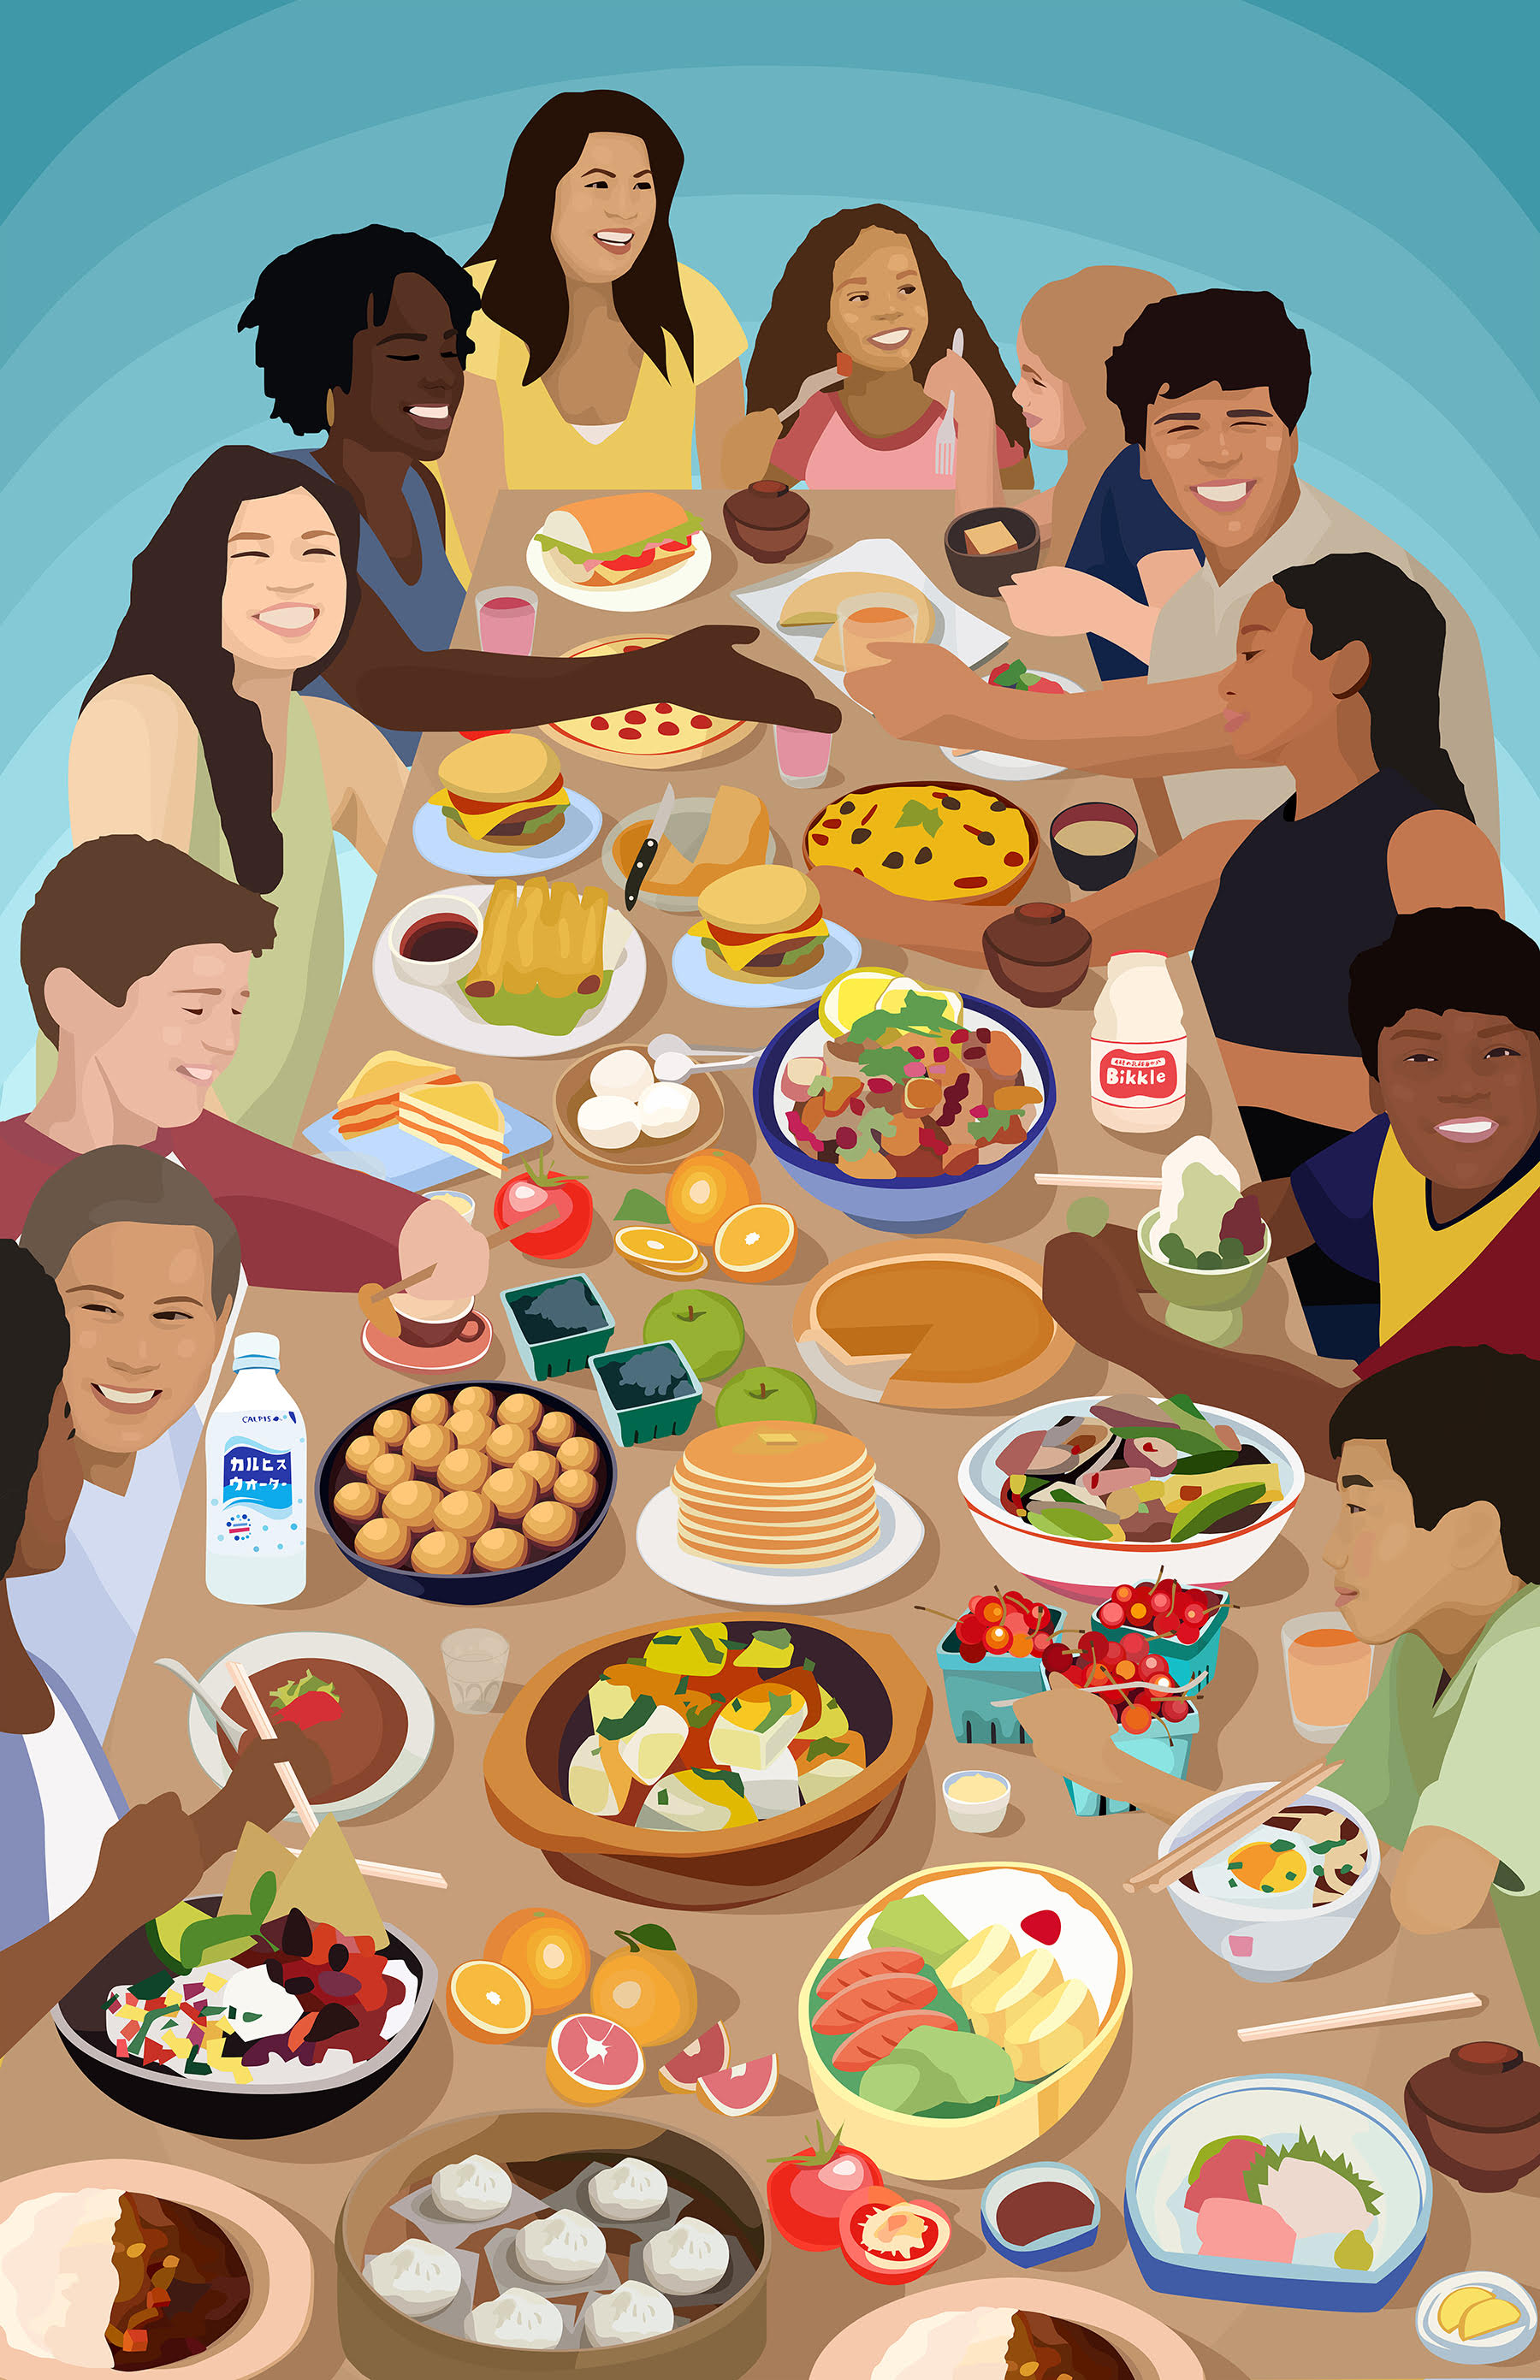 9 people of varying races and genders sit and stand around a table laden with food, eating together